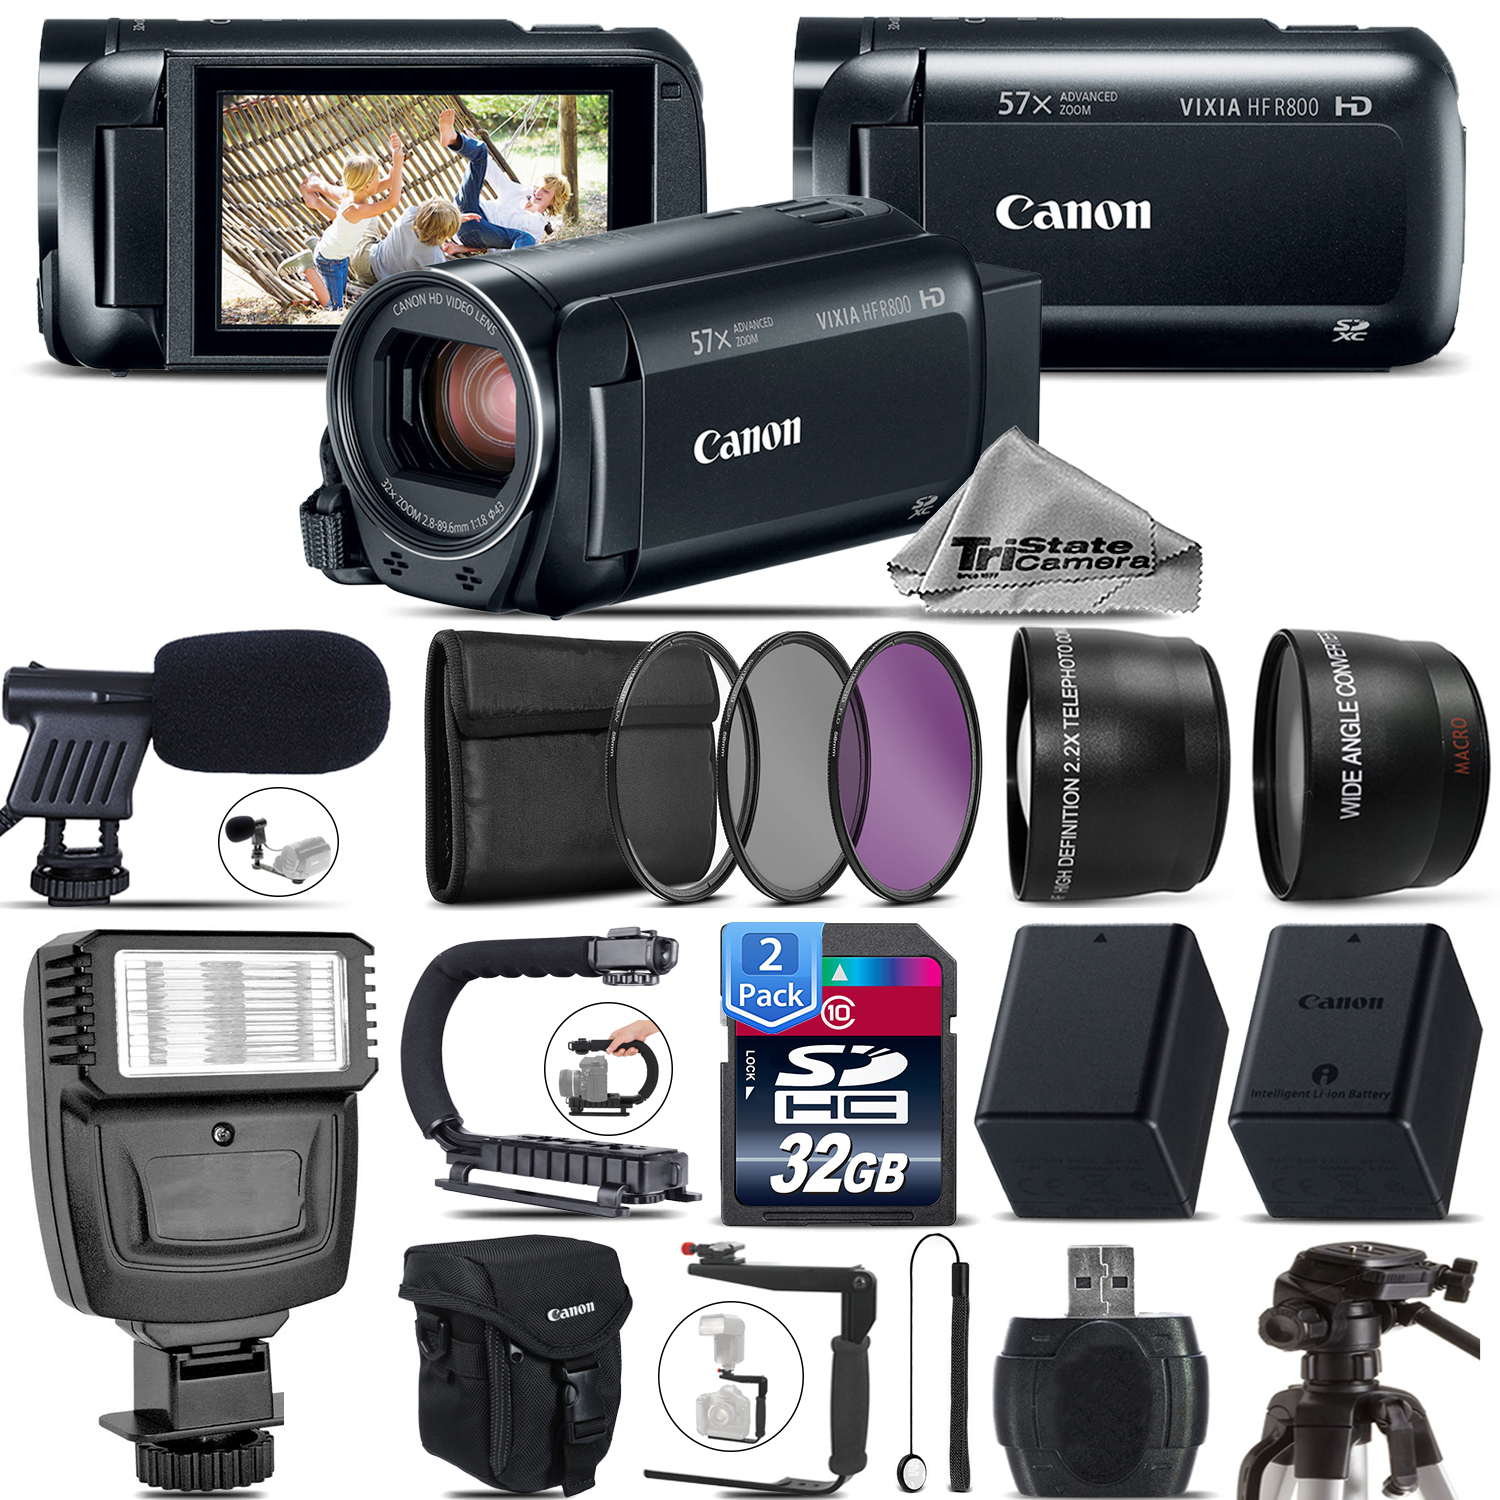 Canon Vixia Hf R 800 Hfr 800 Camcorder Black Mic Filter Kit Flash 64gb Free Shipping Tri State Camera Video And Computer